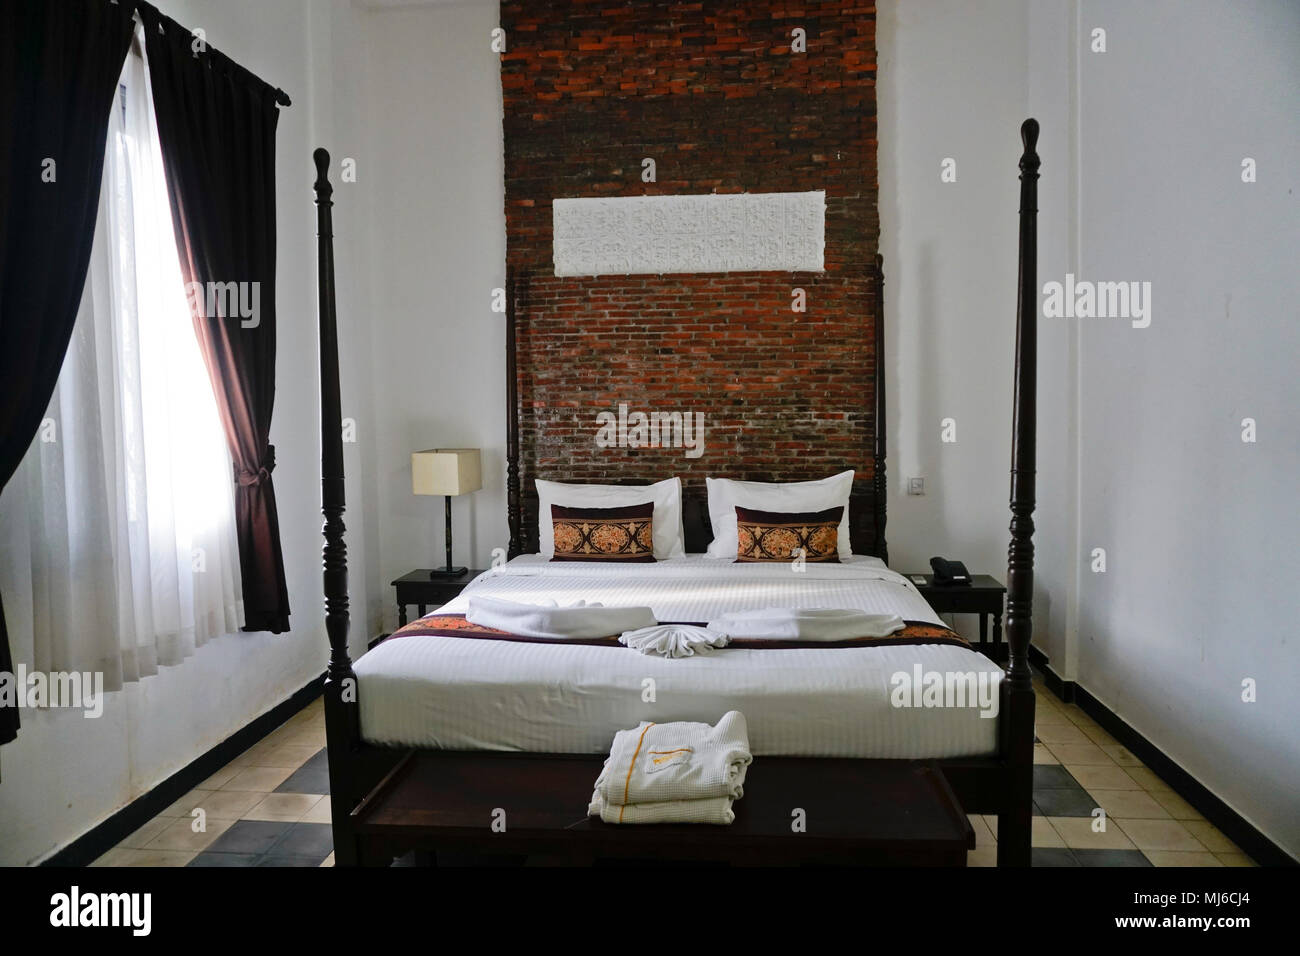 Bedroom with 4 poster bed Stock Photo